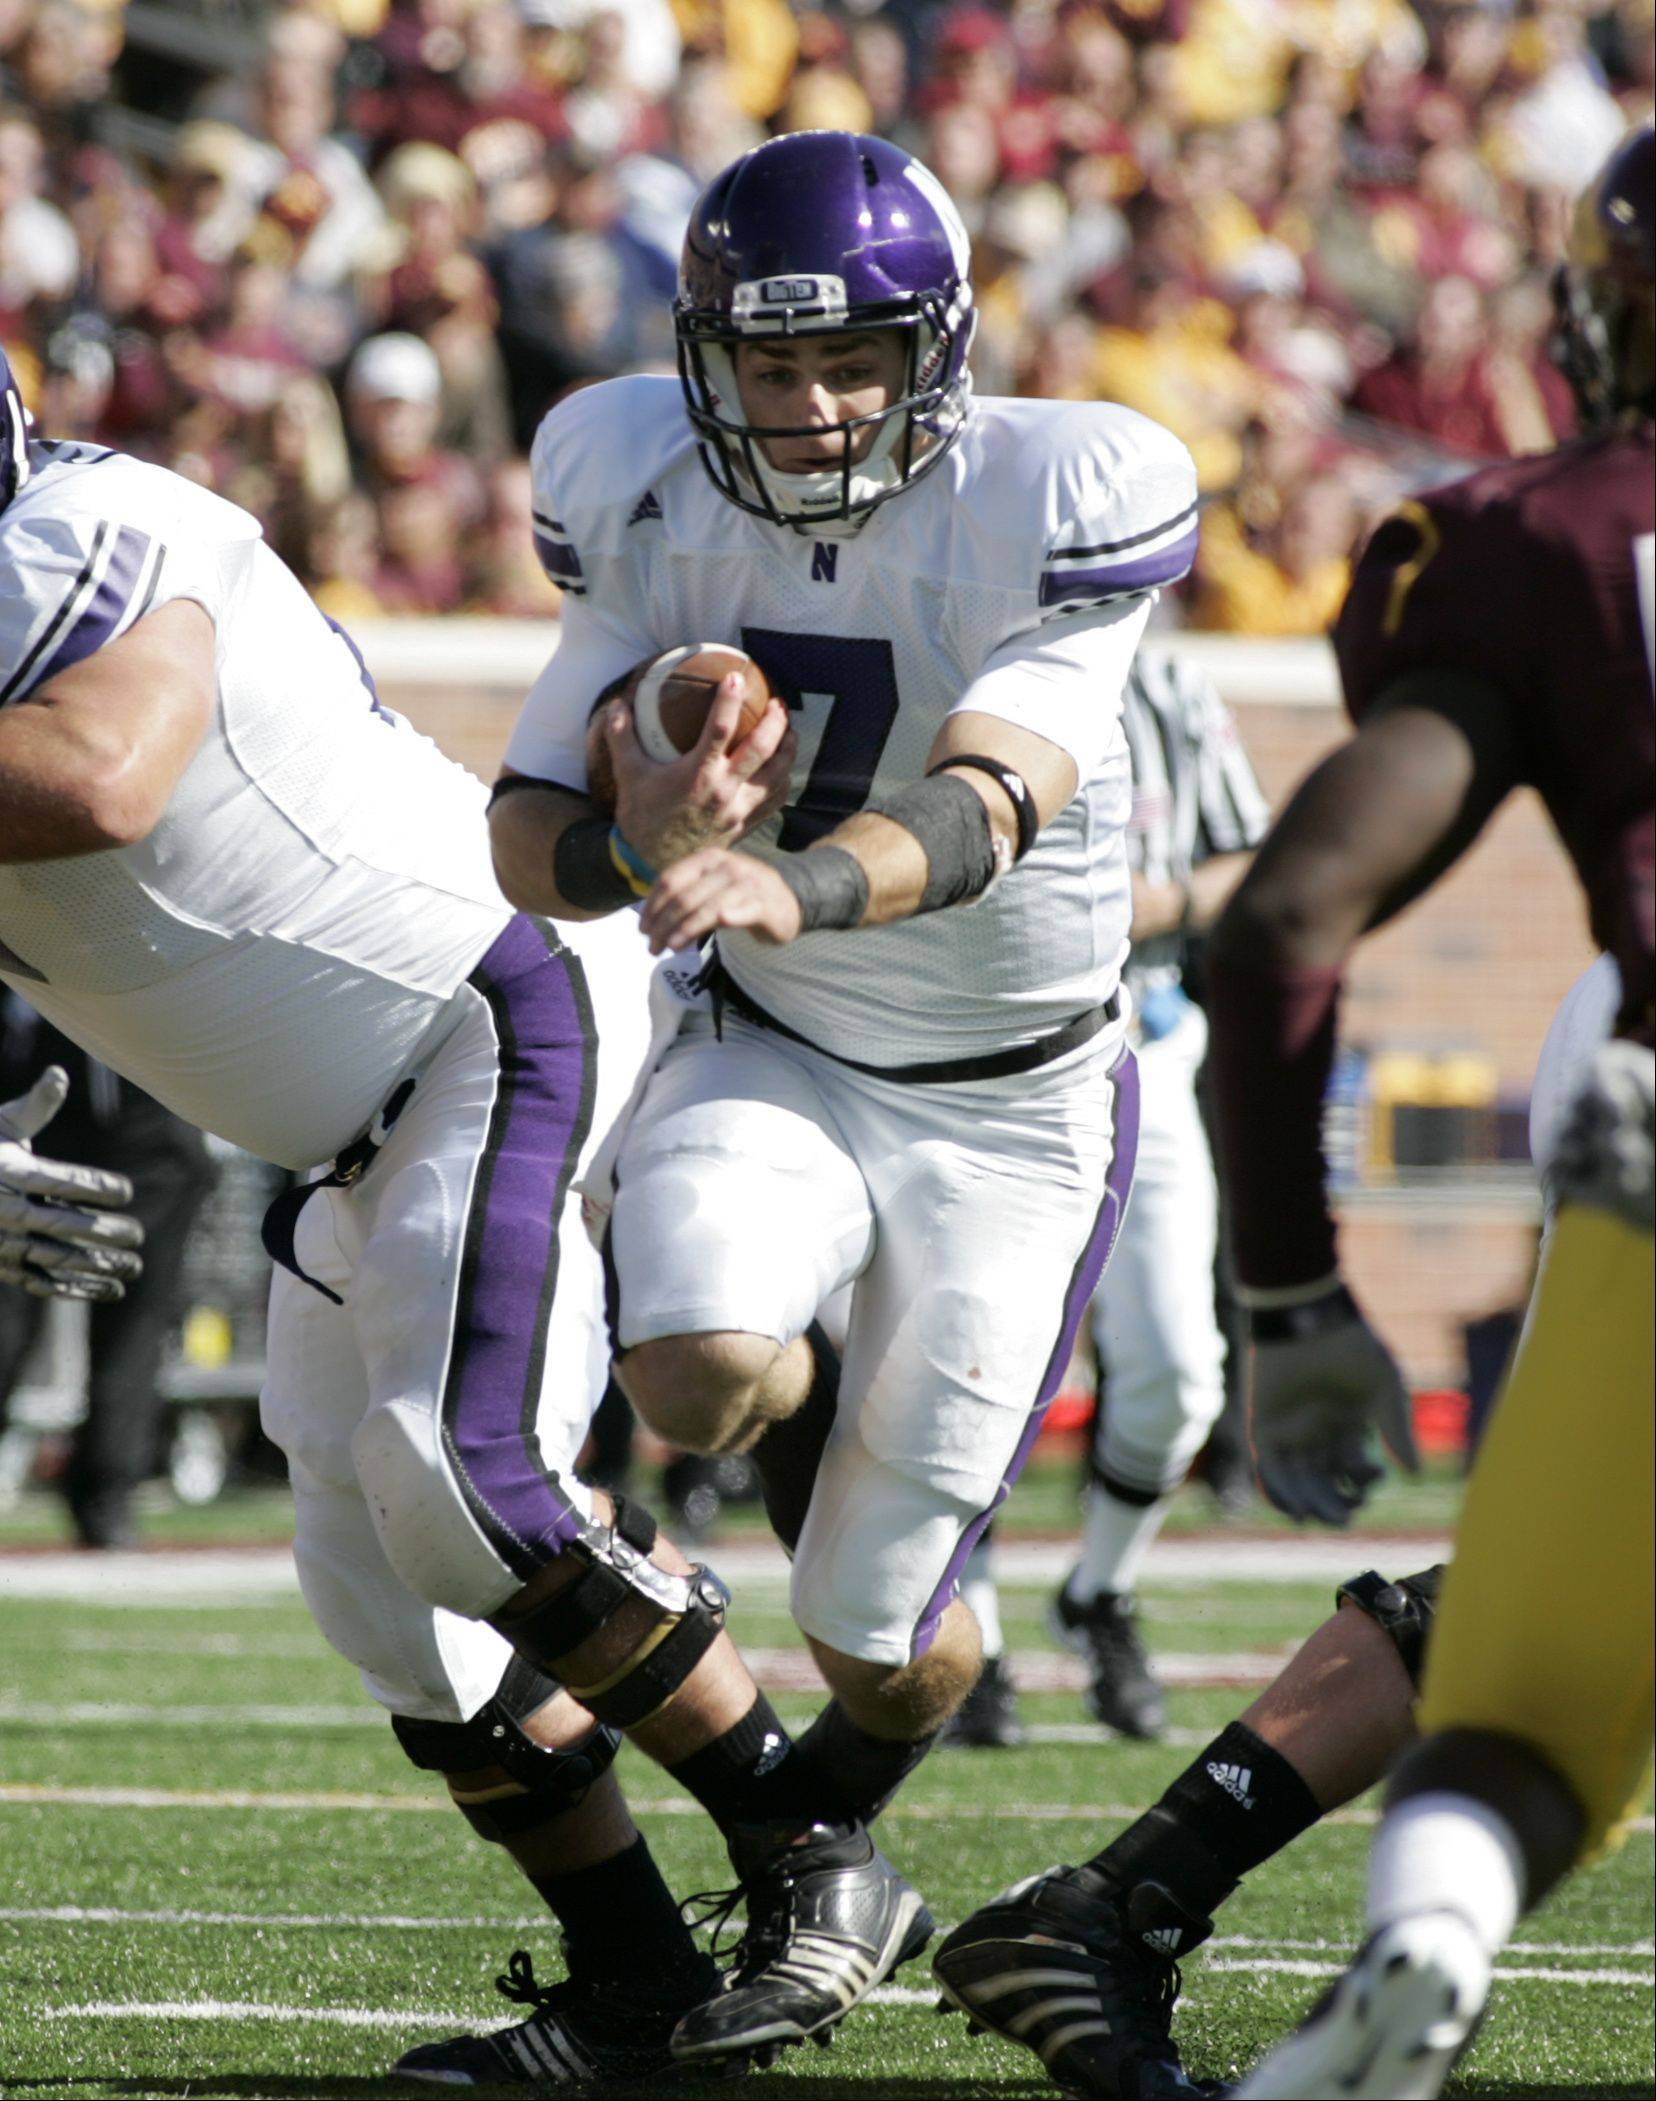 Northwestern quarterback Dan Persa runs for a short gain against Minnesota during the first half of an NCAA football game, Saturday Oct. 2, 2010 in Minneapolis. Persa ran for a team high 99 yards on the day as Northwestern won 29-28.